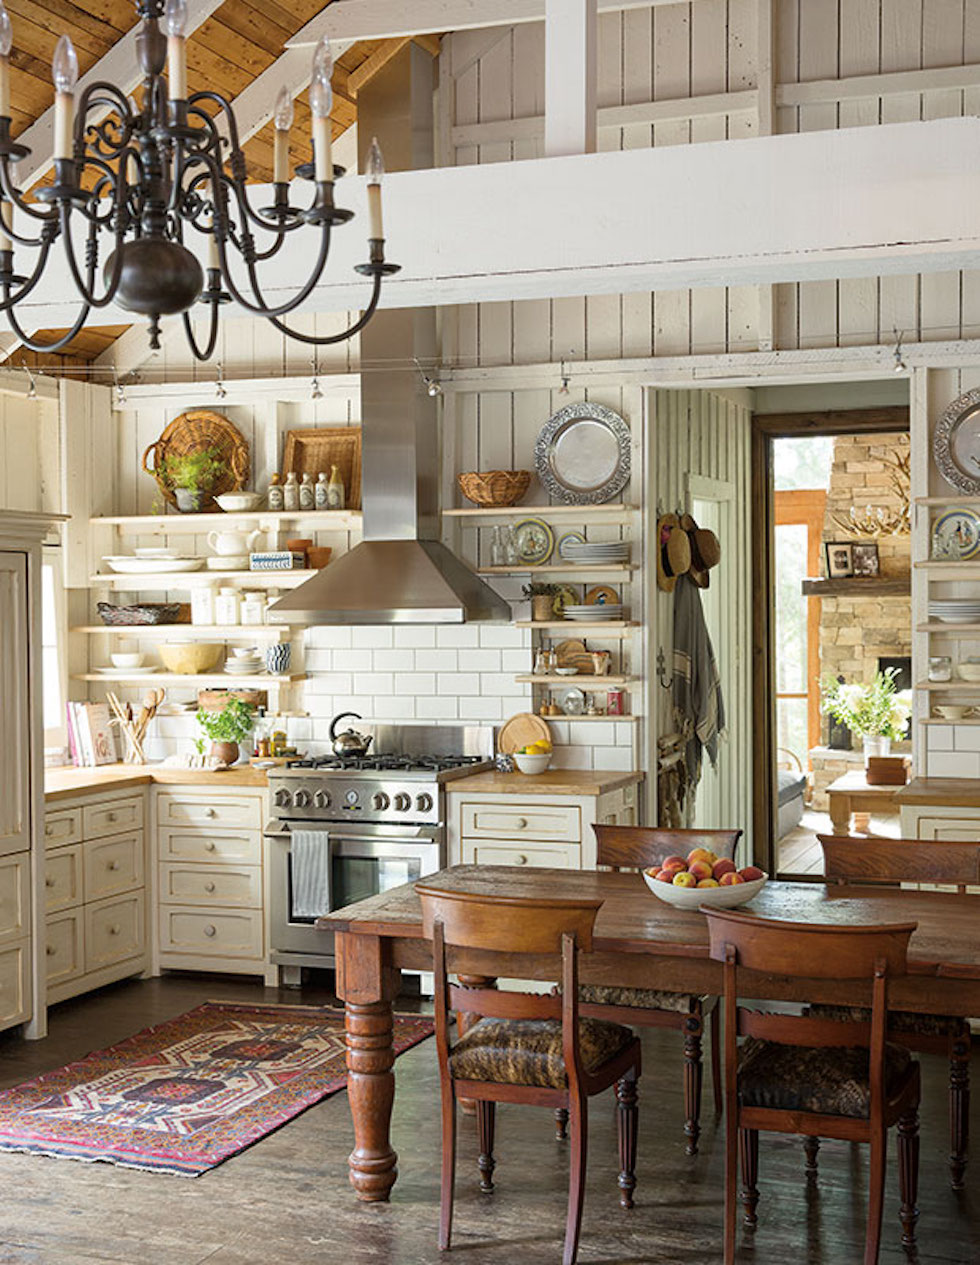 14 Ideas for a Cozy Fall Kitchen